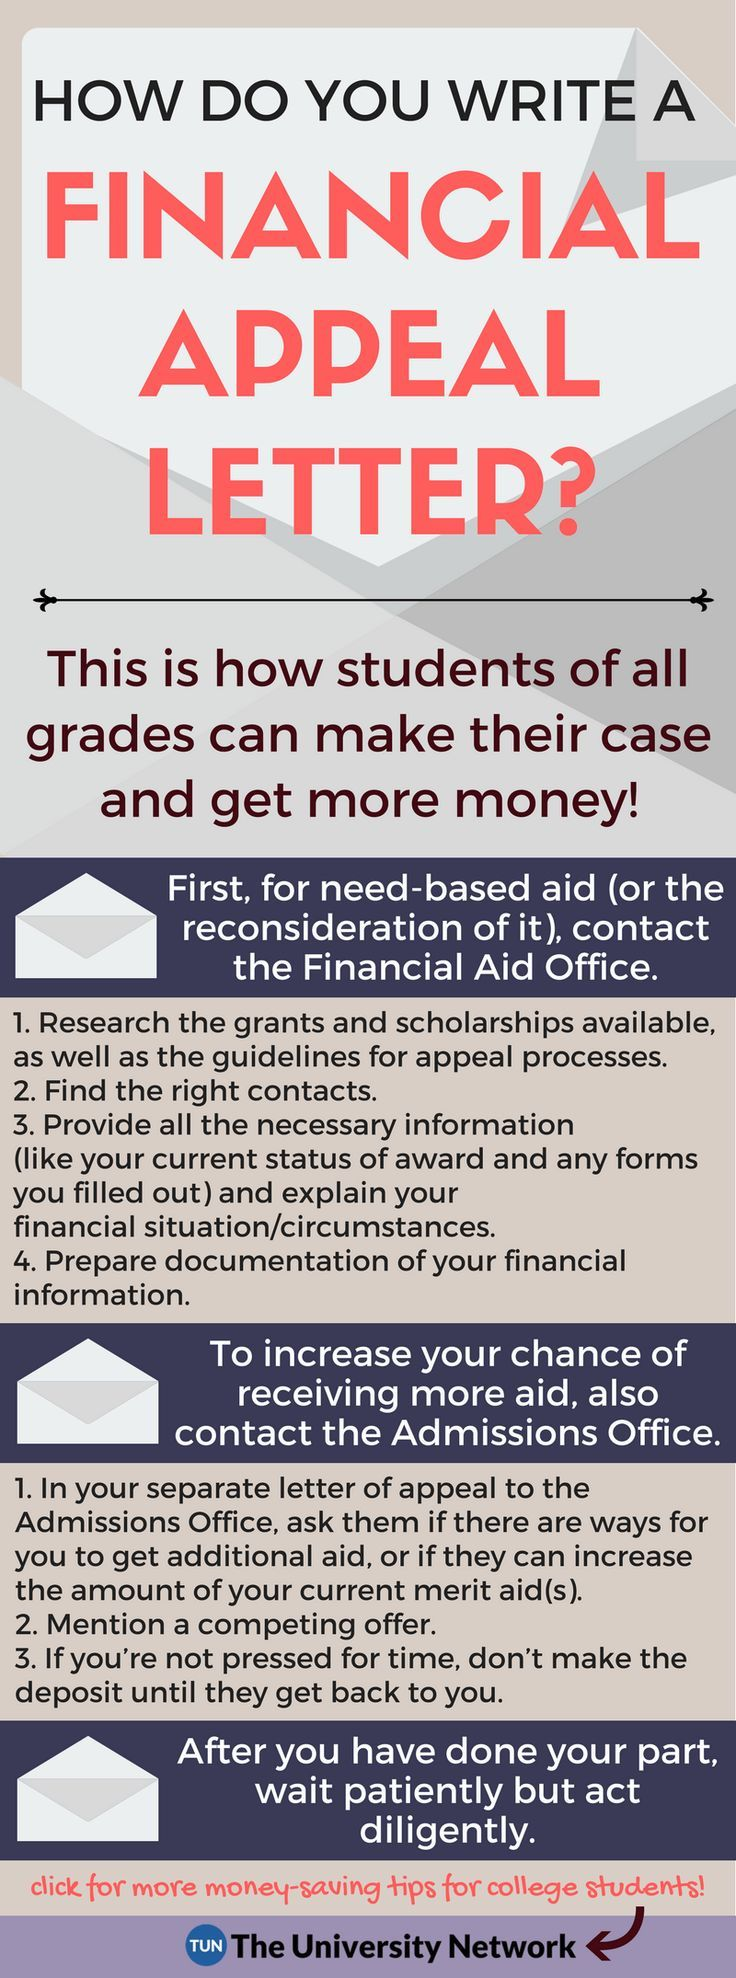 d32f4d0b52520178834b6e9d0b1d70d8 - How Much Money Can You Make To Get Financial Aid